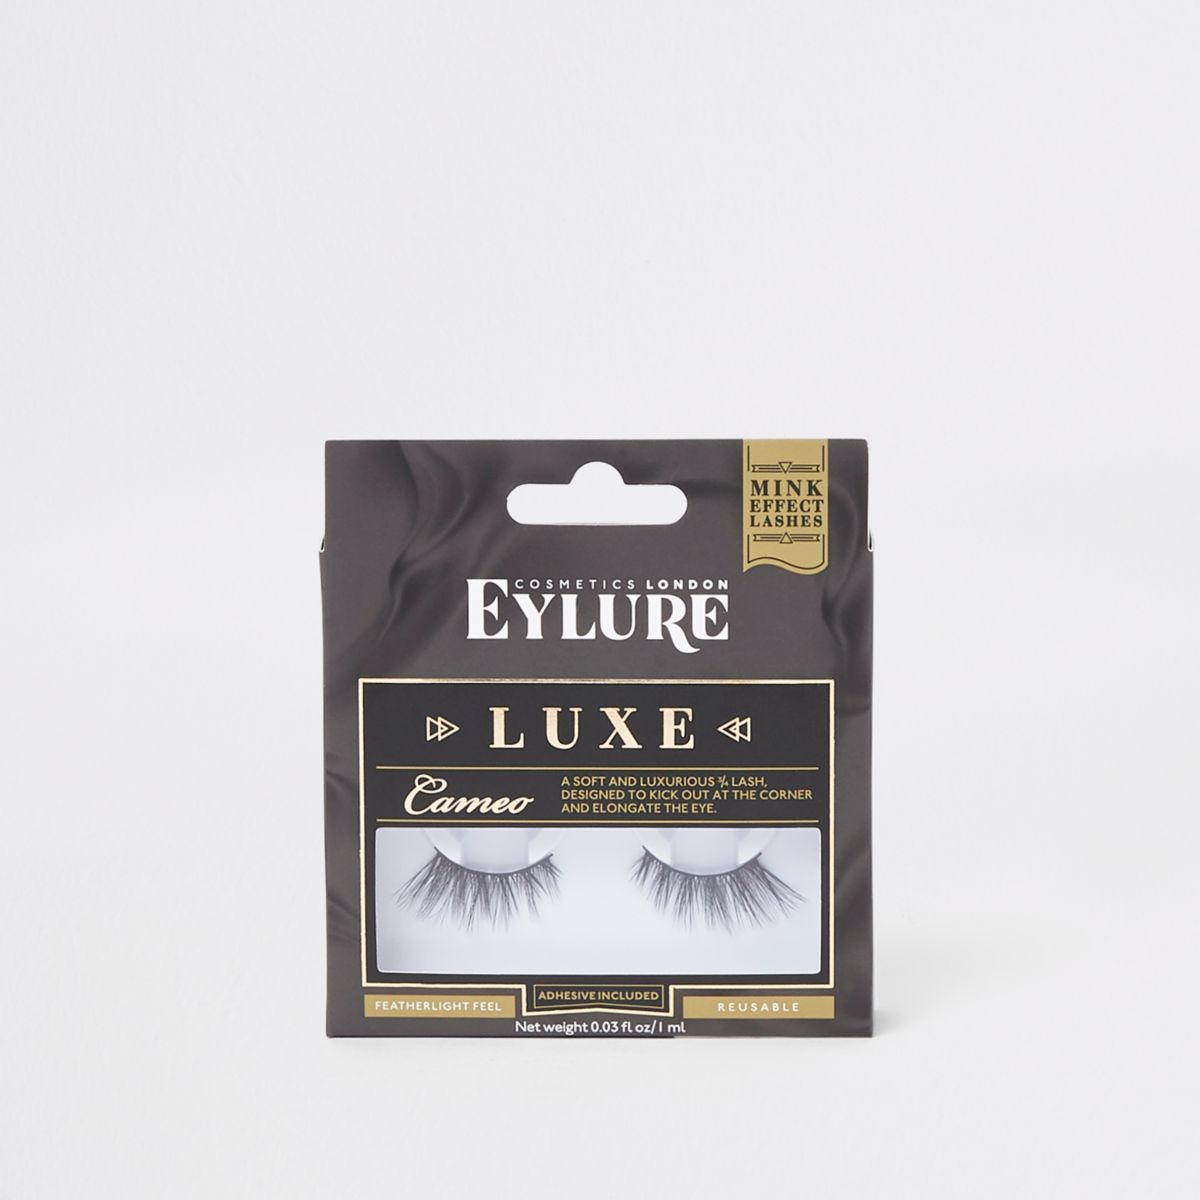 Eylure Luxe Collection Cameo fasle eyelashes